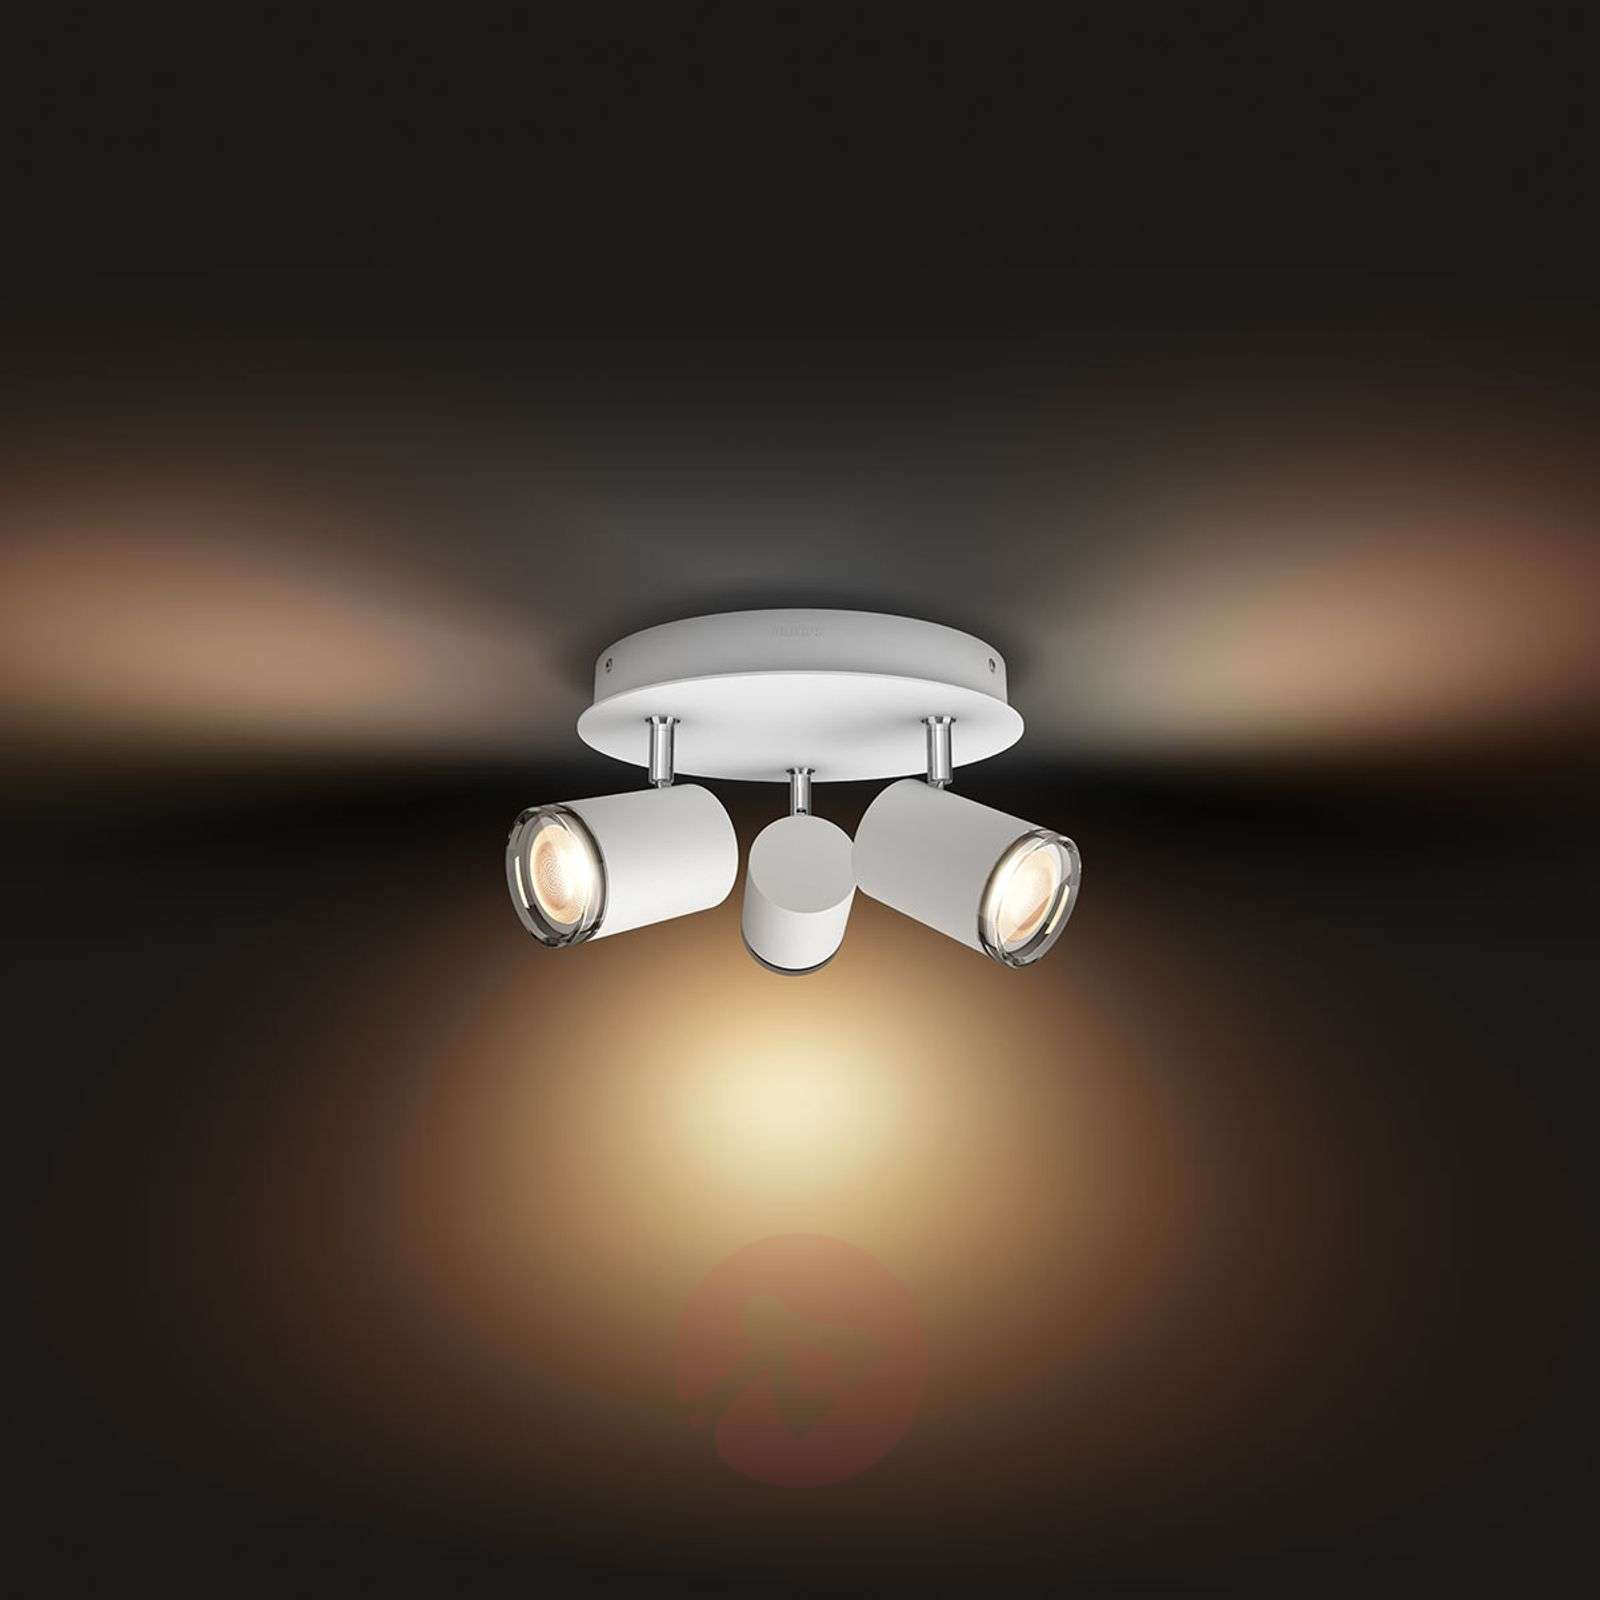 Philips Hue White Ambiance Adore LED-kattovalaisin-7534074-01